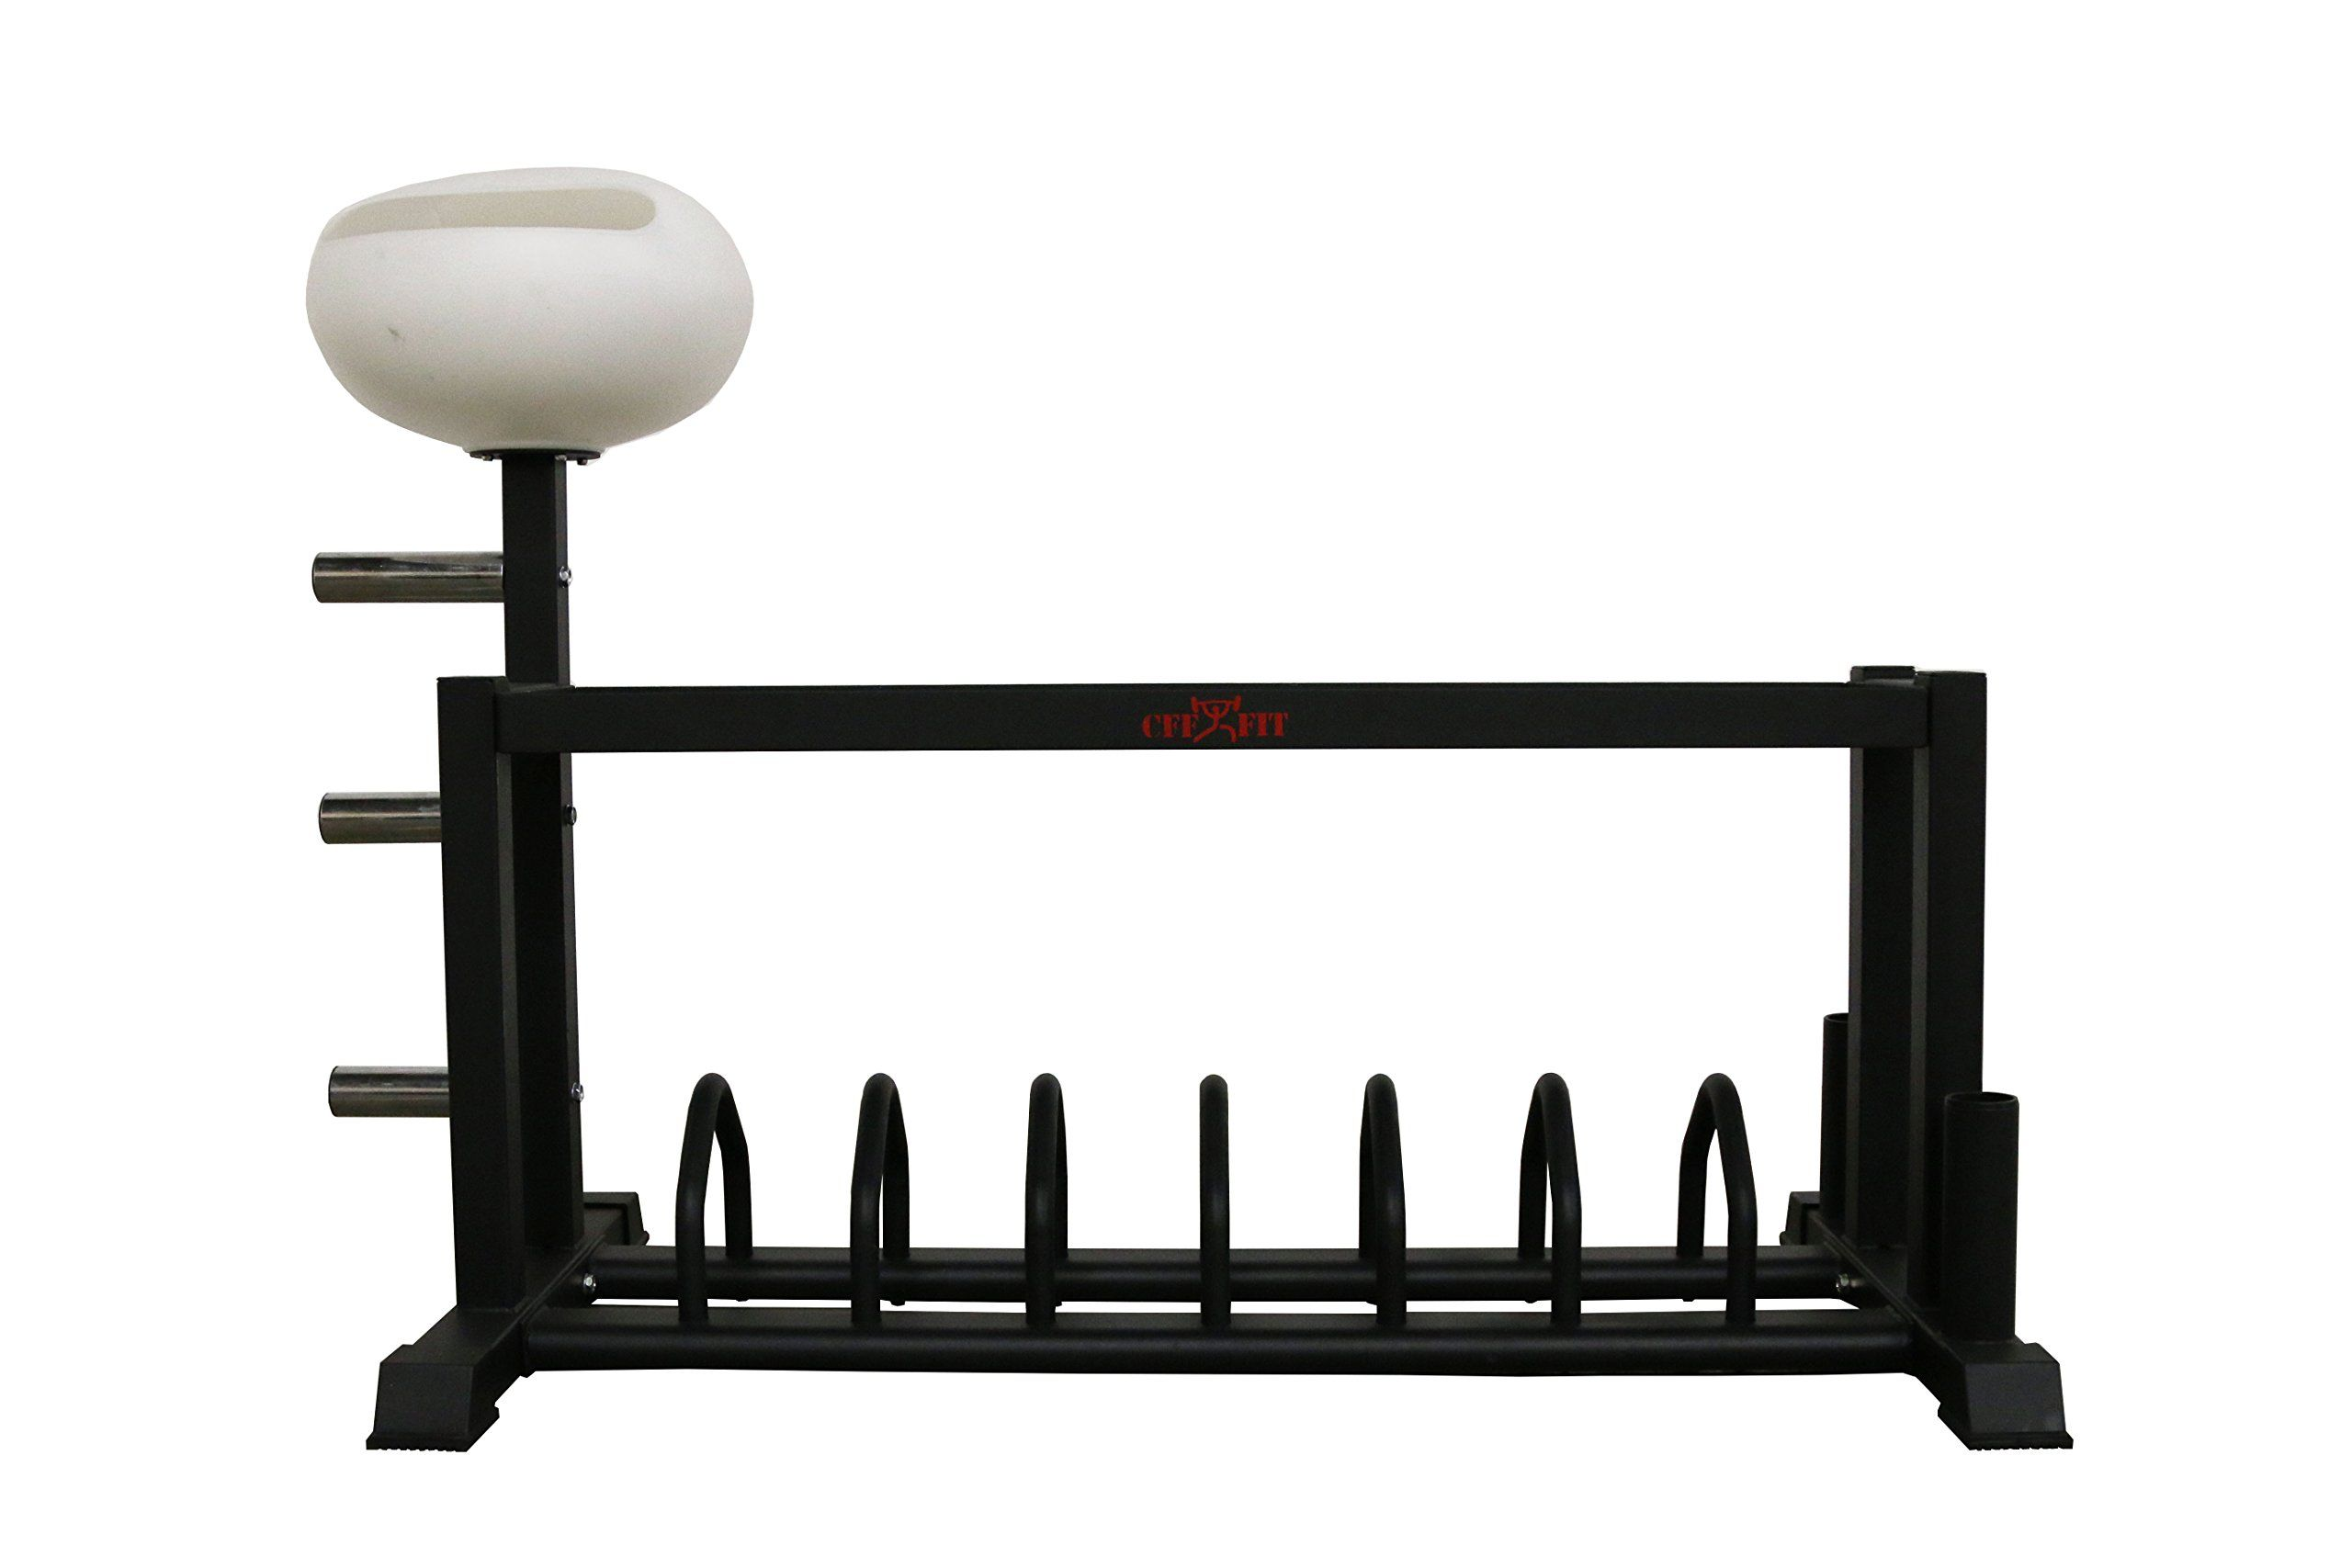 plates multi row power tree olympic trainer bars packages rubber core kg fid storage shop jaw safety dip collars lock up rack bench barbell trpc tbar handles chin weights